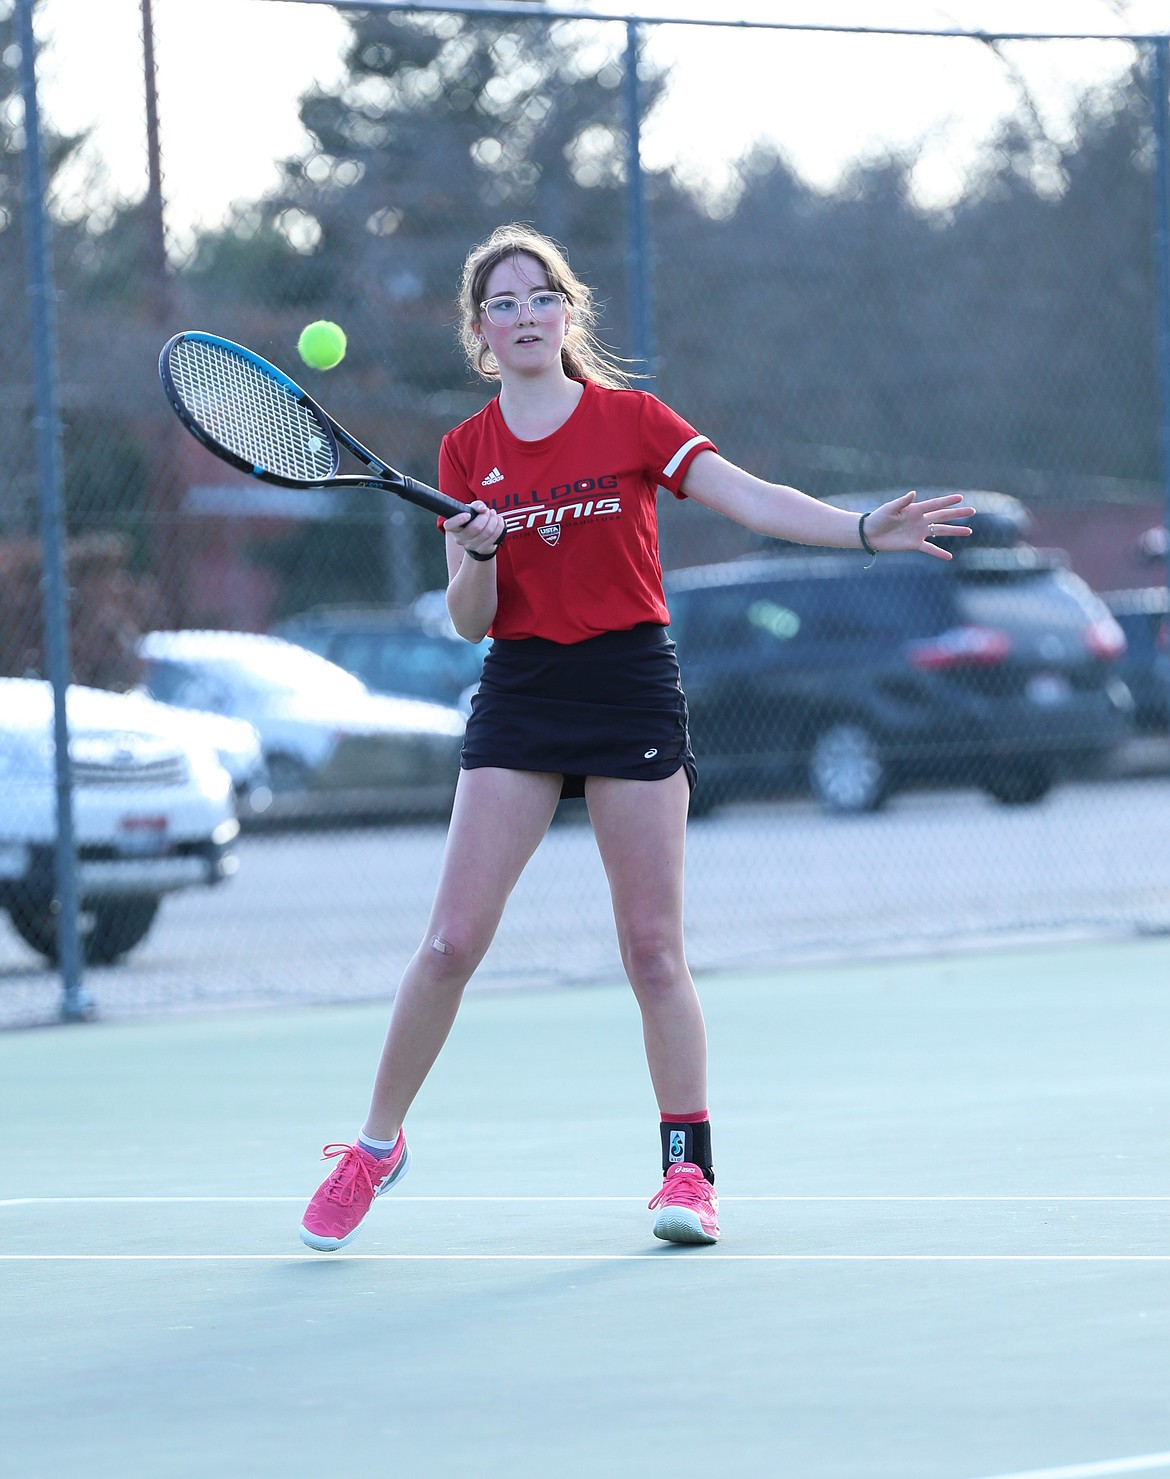 Denali Terry returns a shot during singles play on Wednesday.